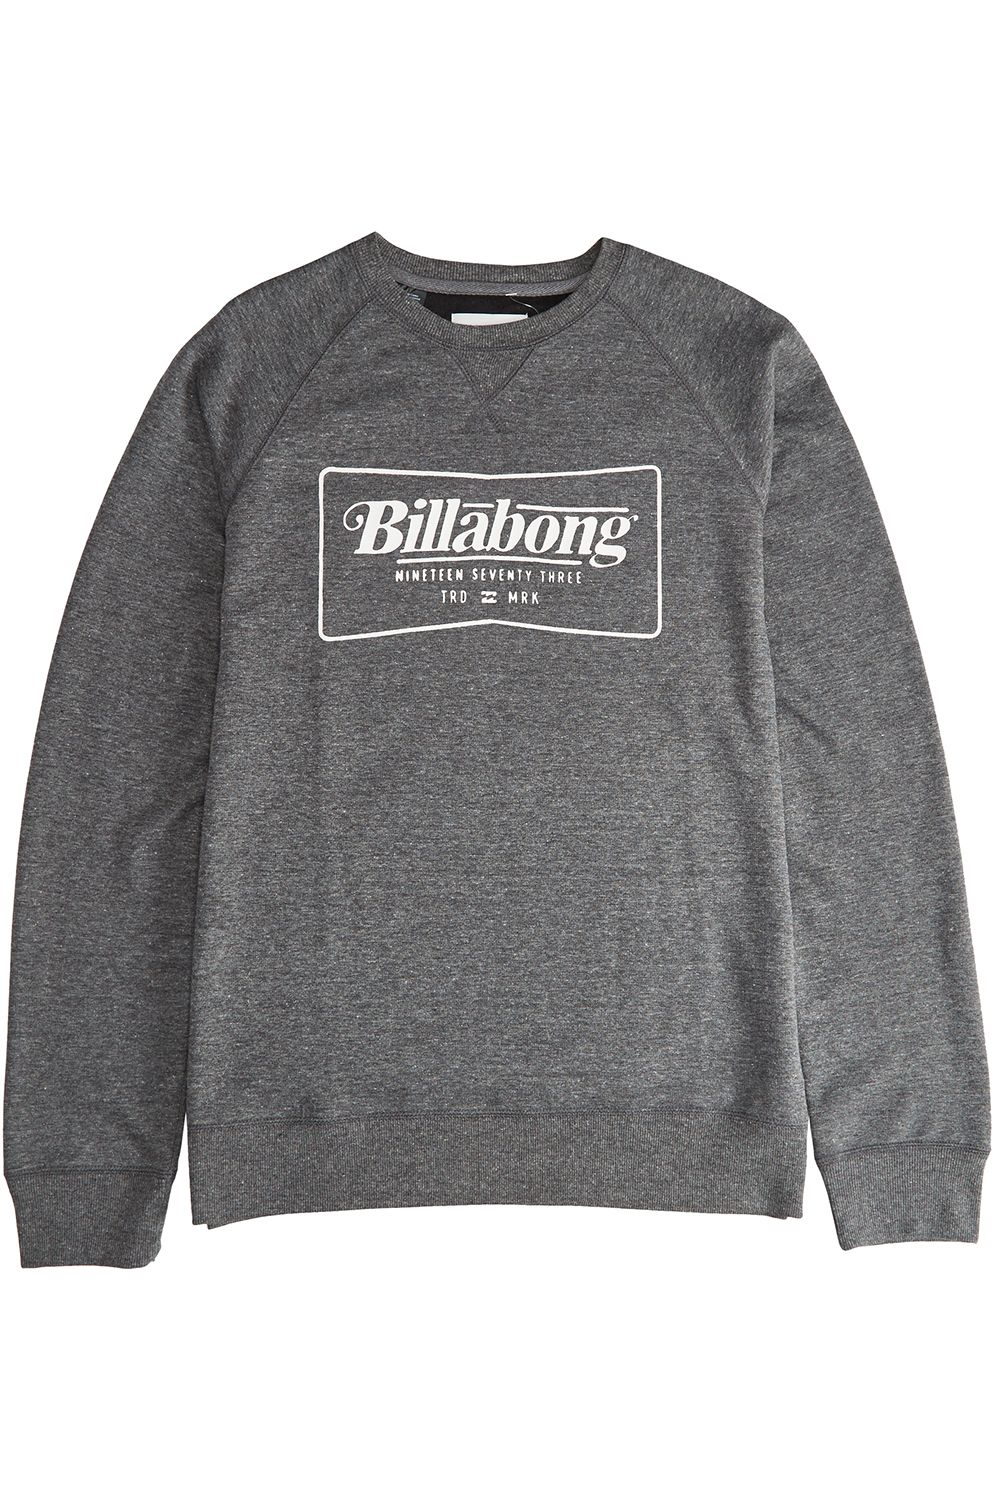 Sweat Basica Billabong TRD MARK Black